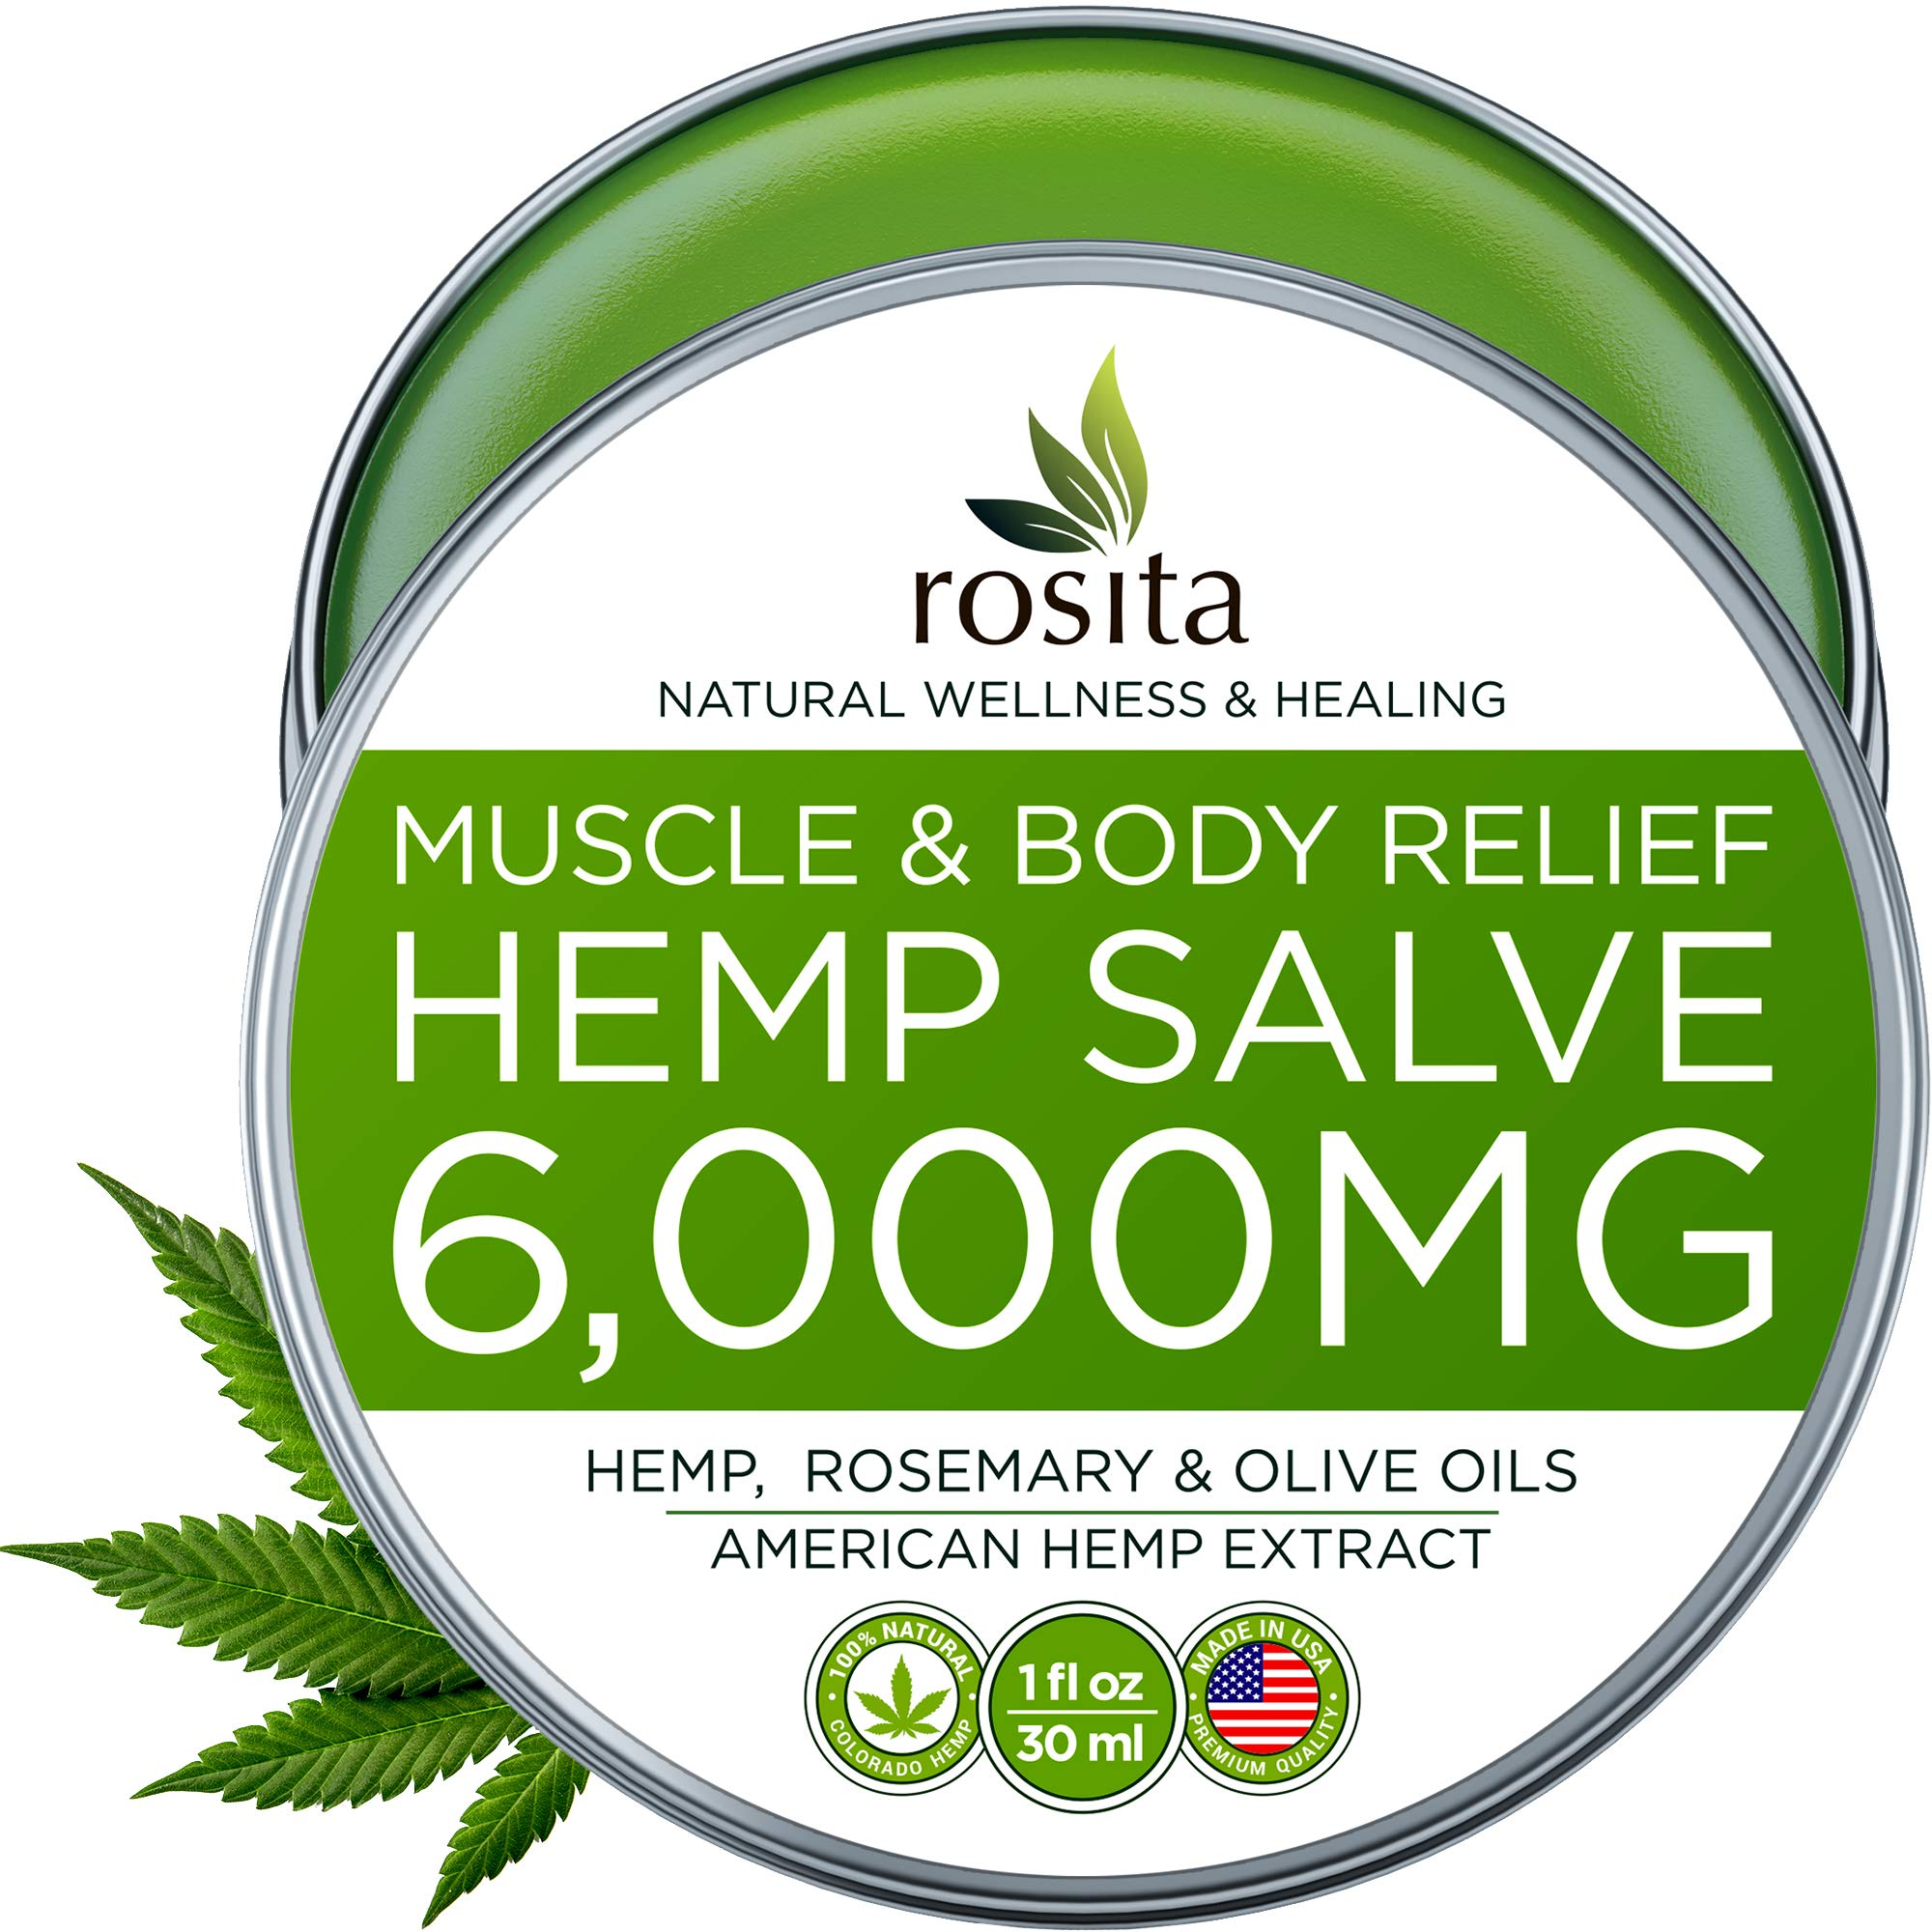 Premium Hemp Balm - Ultra Strong Natural Pain Relief - 6000mg Hemp Extract - Rosemary & Hemp Oil - Anti-Inflammatory for Joint & Muscle, Arthritis Pain - Fast Acting Hemp Salve - Made in USA - Non-GMO by ROSITA